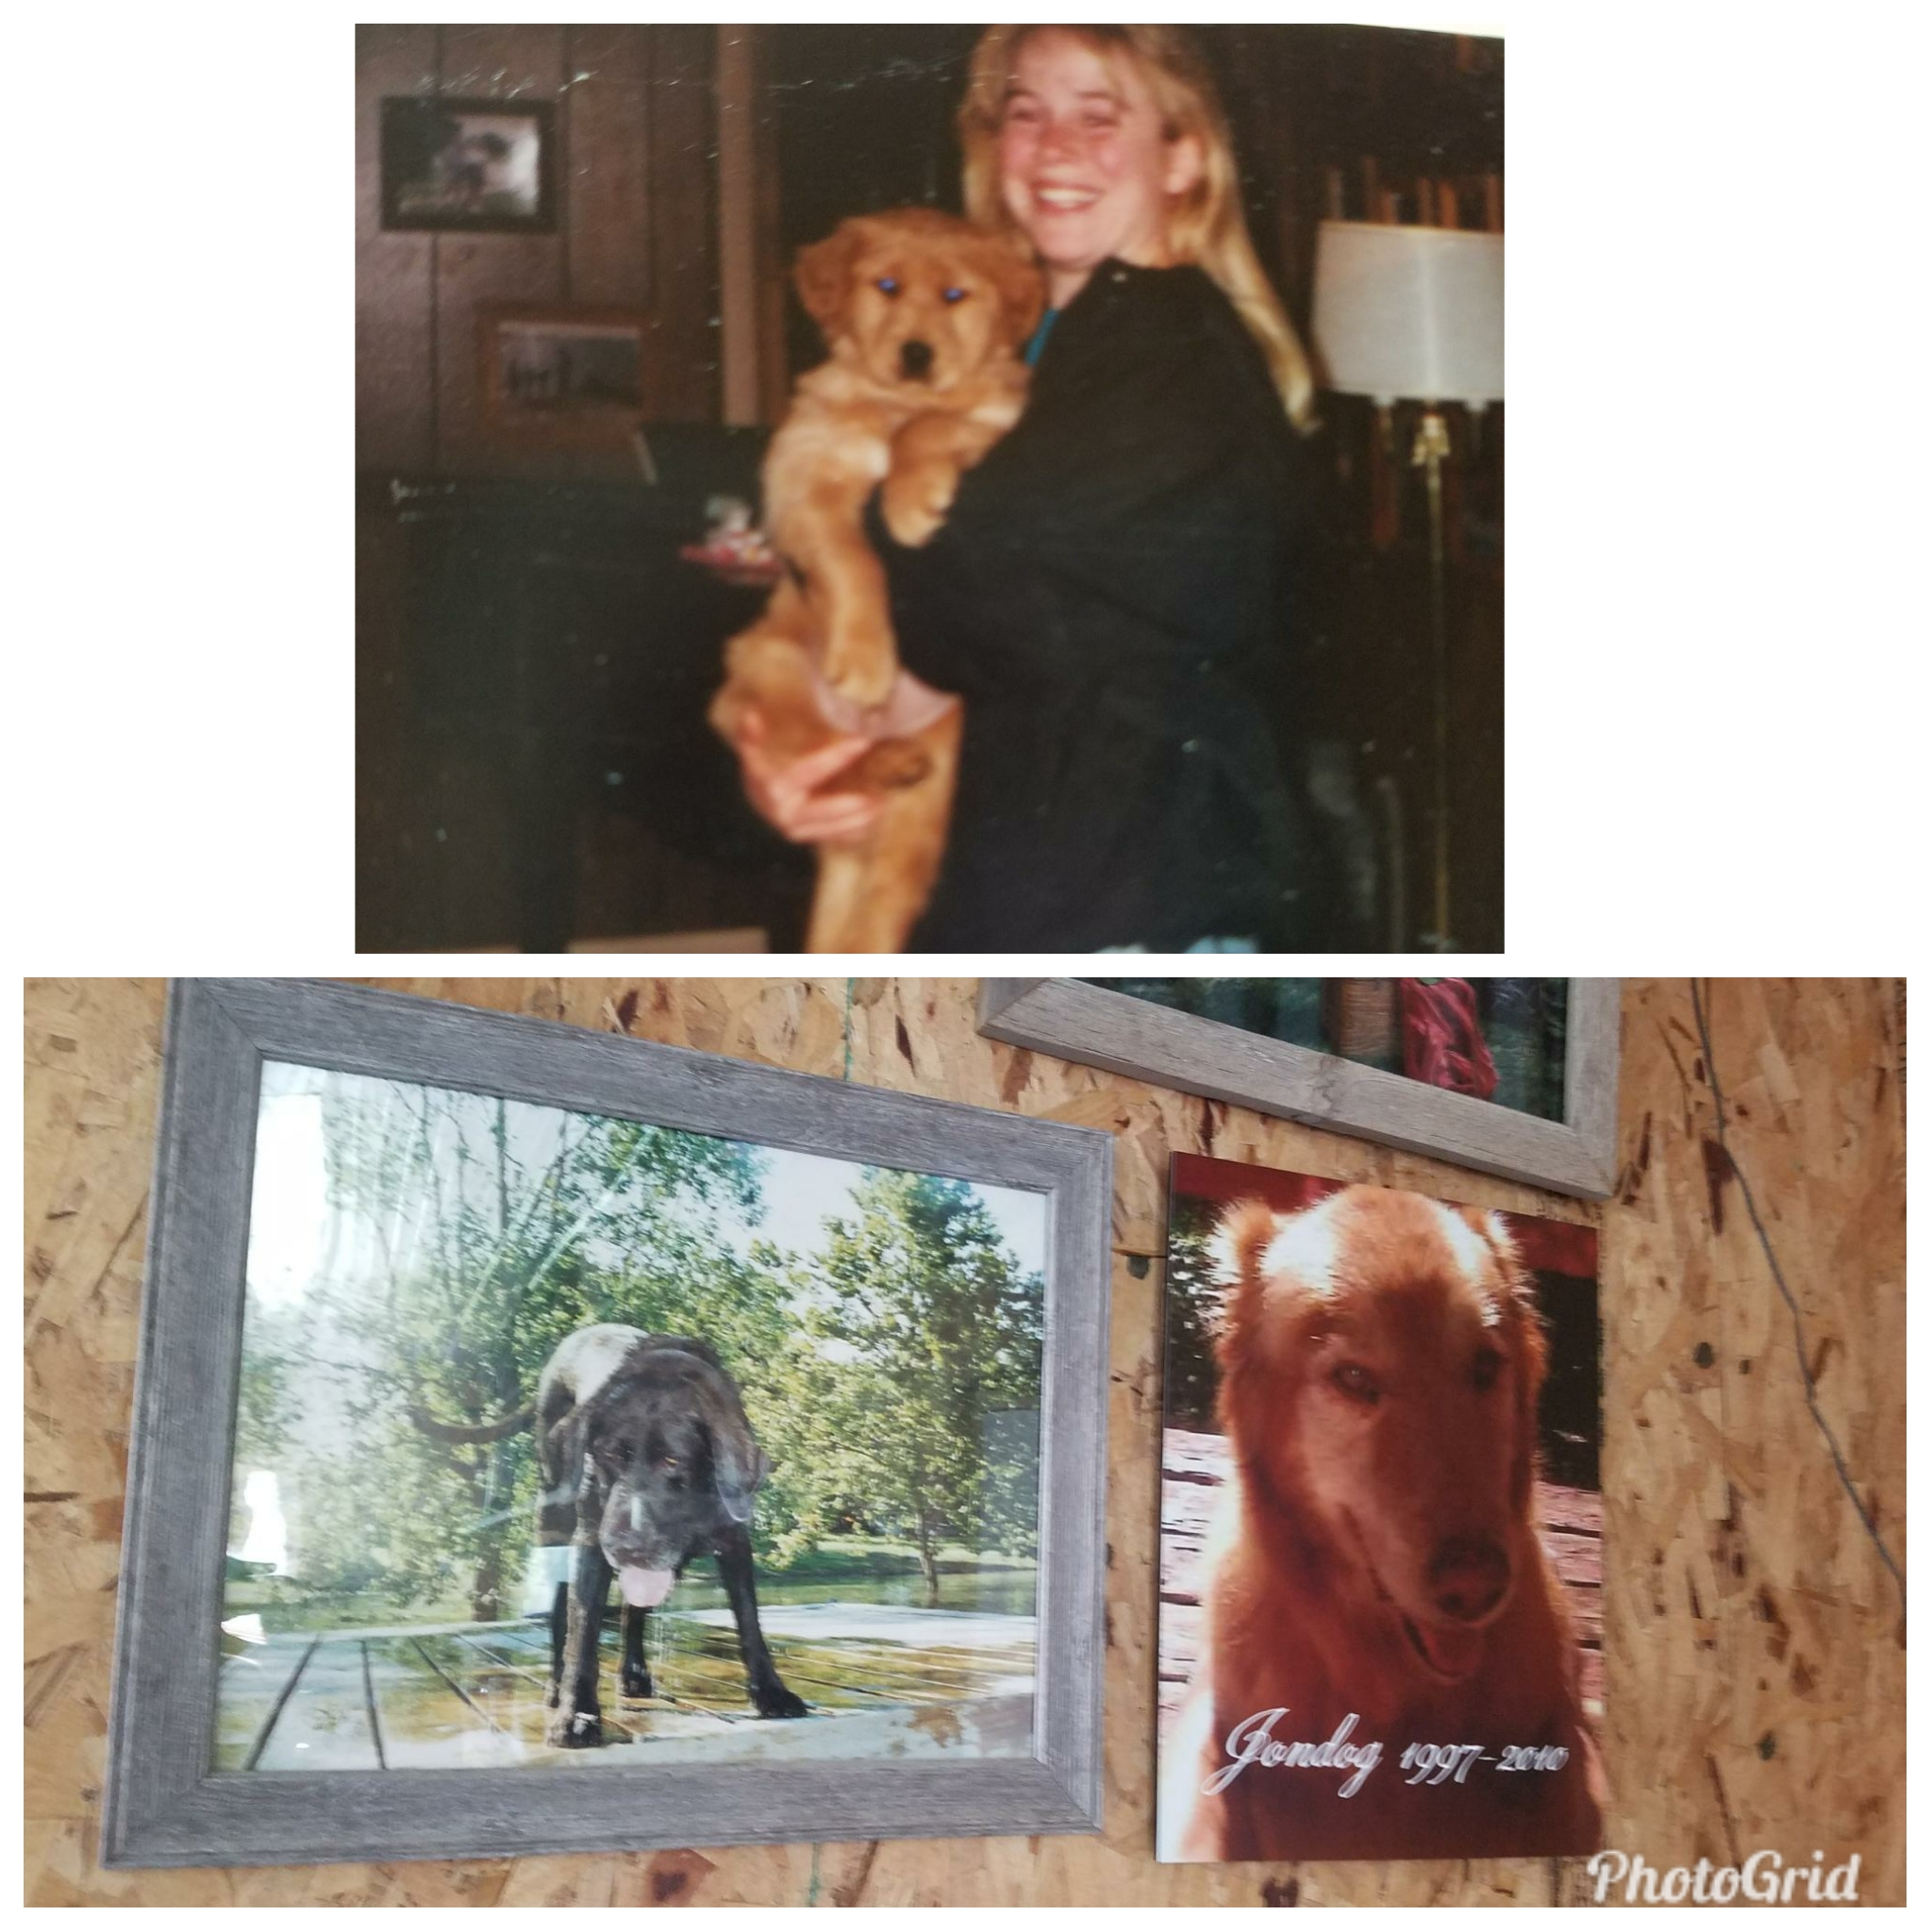 "When Casey passed away in 1996, I spent considerable time looking for someone to fill that void. Jonny (pictured at top as a puppy) was my next love. Jonny ""Jondog"" finished high school with me, went to college with me, was there when I got my first teaching job, and stood at the door to greet me when I brought home my son from the hospital. The pictures of both Casey and Jondog hang in our shop to remind us why we do what we do."